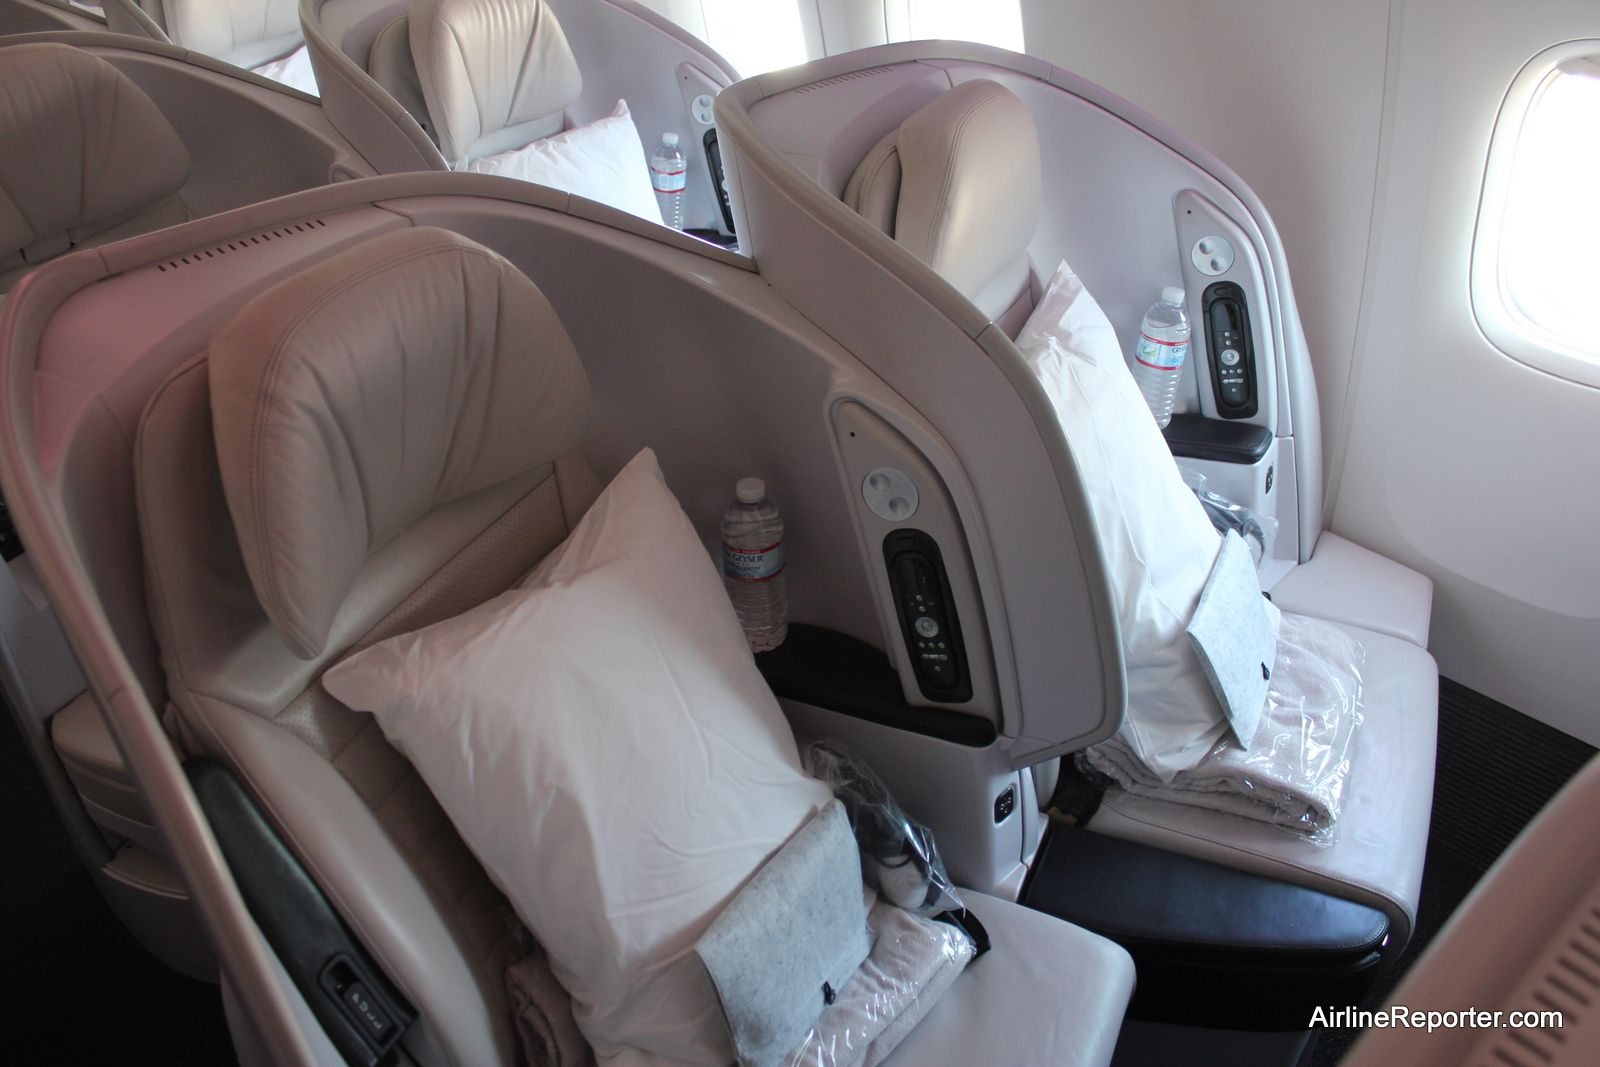 Review Of Air New Zealand S Premium Economy Without Going To Auckland Airlinereporter Air New Zealand New Zealand Going On Holiday